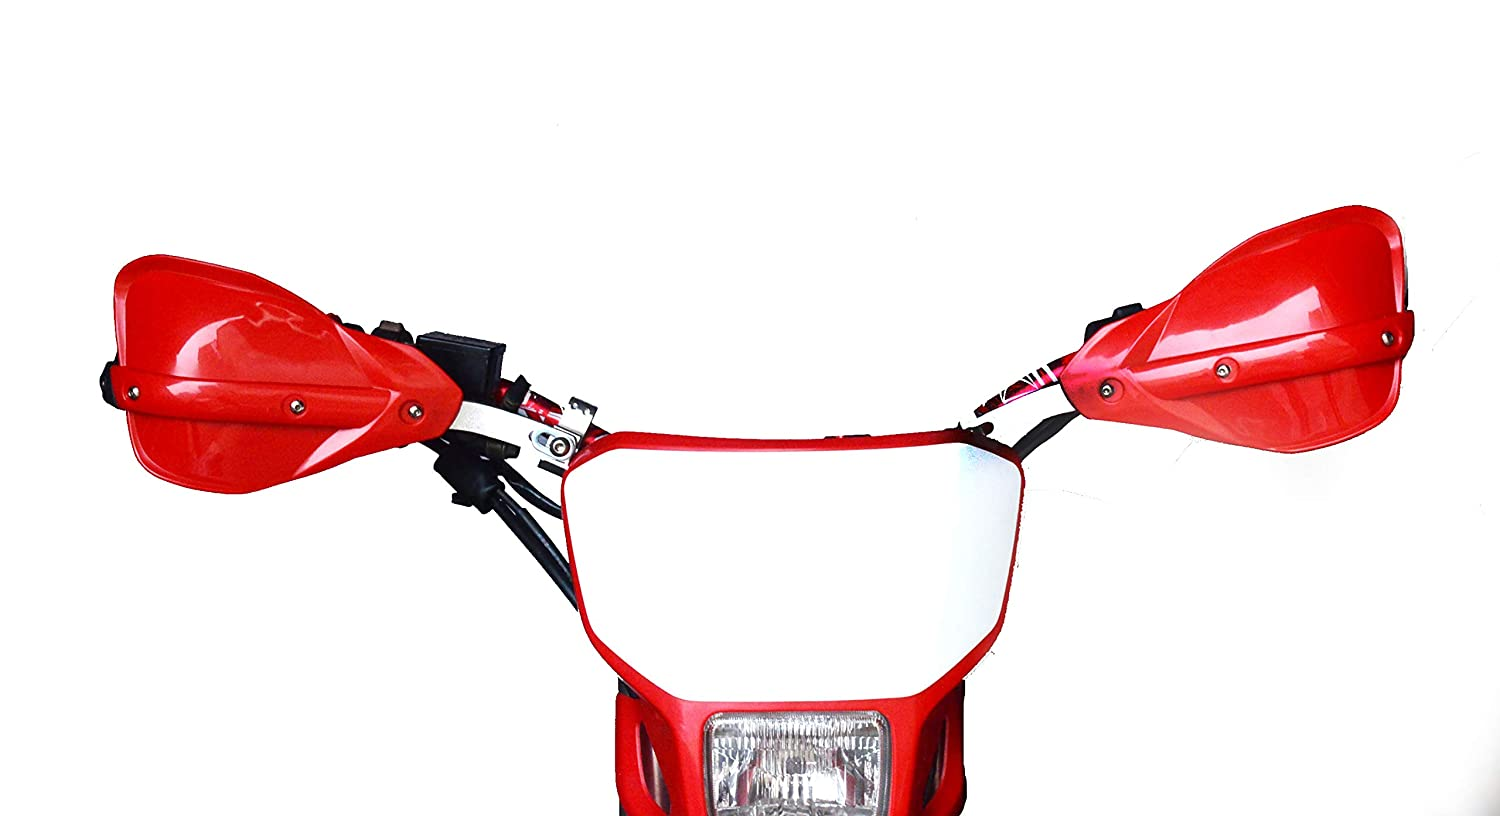 Handguards Motorcycle Hand Guards Motocross Red Universal Aluminum Alloy 7//822mm And 1 1//828mm For Honda CRF CR XR CB CBR 85 110 125 150 230 250 400 600 650 Dirt Pit Bike Racing ATV Quad KAYO